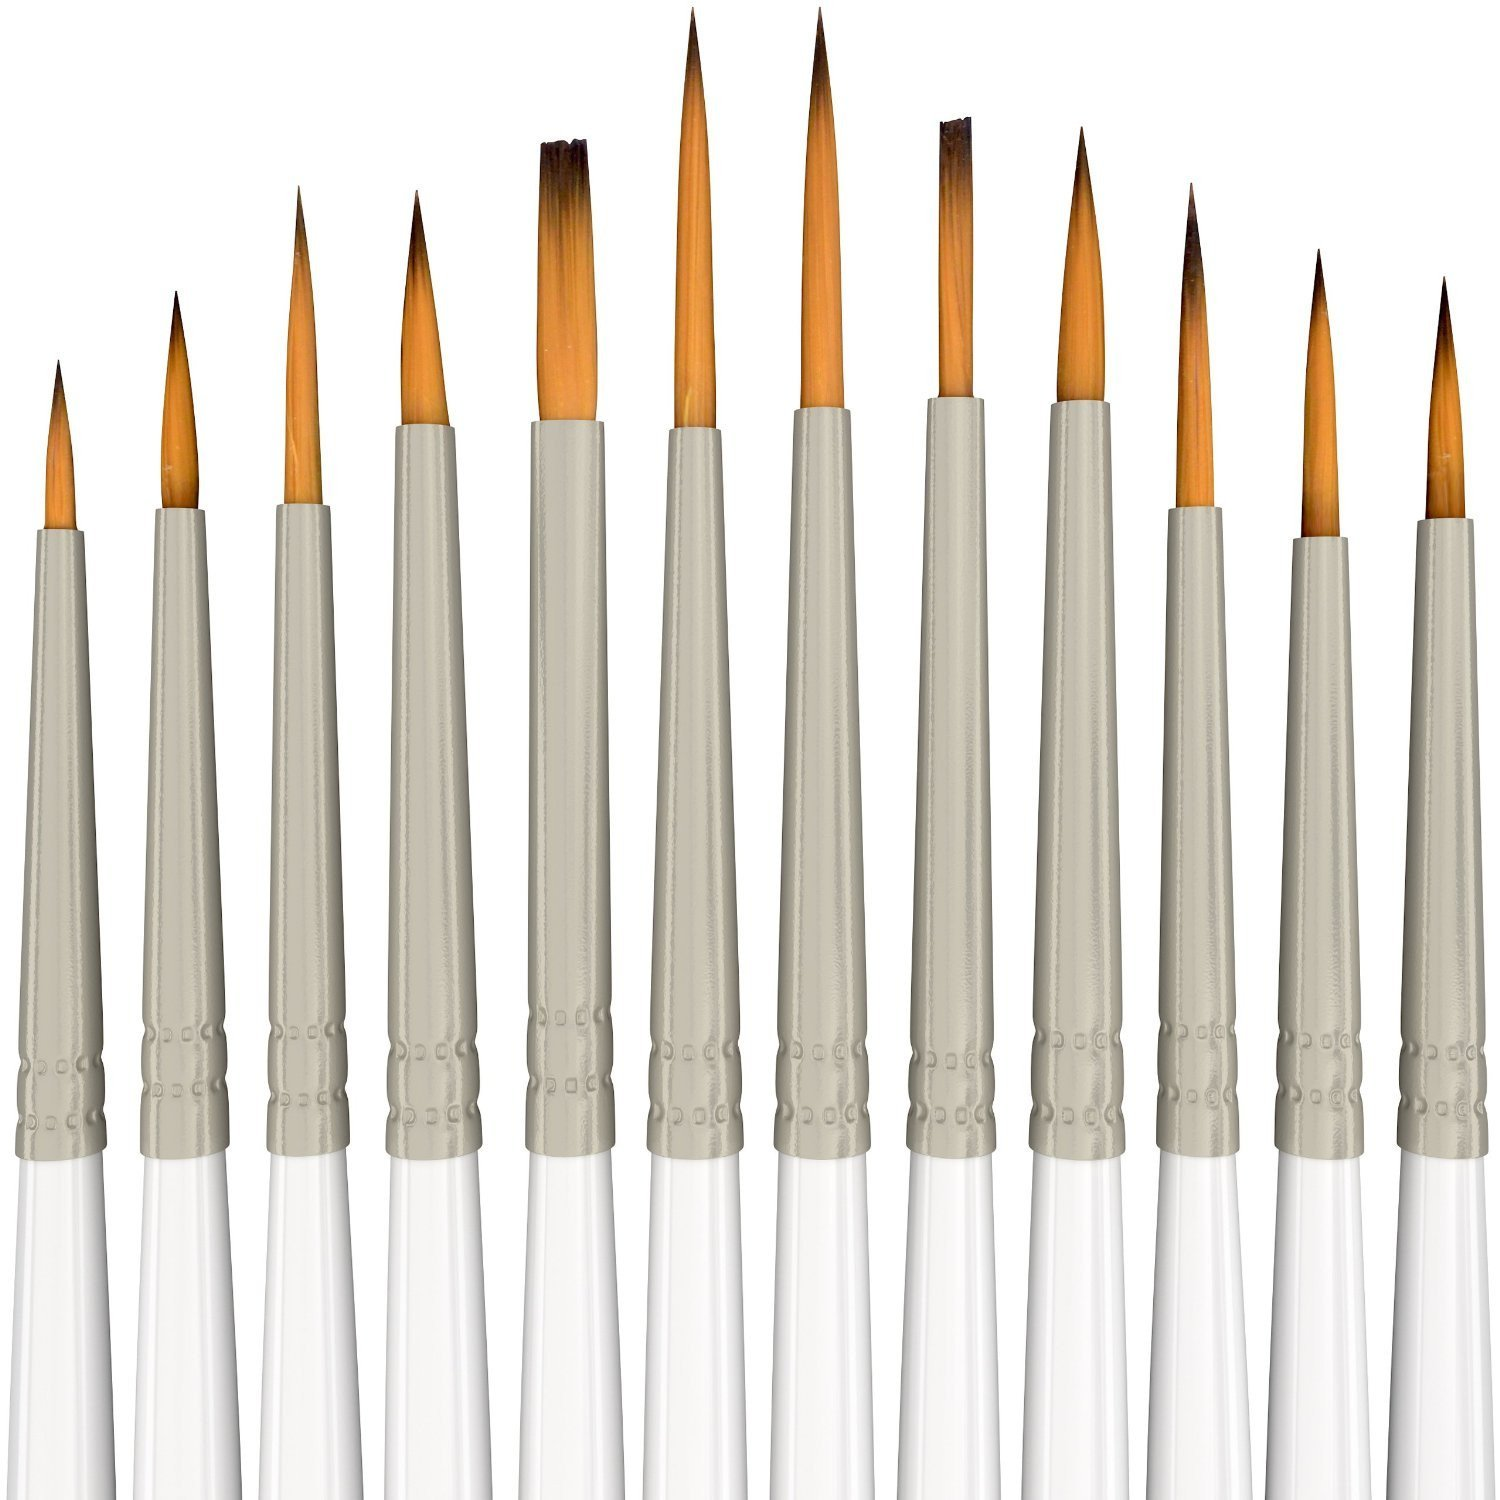 Detail Paint Brush Set - 12 Miniature Brushes for Fine Detailing & Art Painting - Acrylic, Watercolor, Gouache, Oil - Models, Airplane Kits, Ink, Warhammer 40k - Artist Quality Supplies by MyArtscape